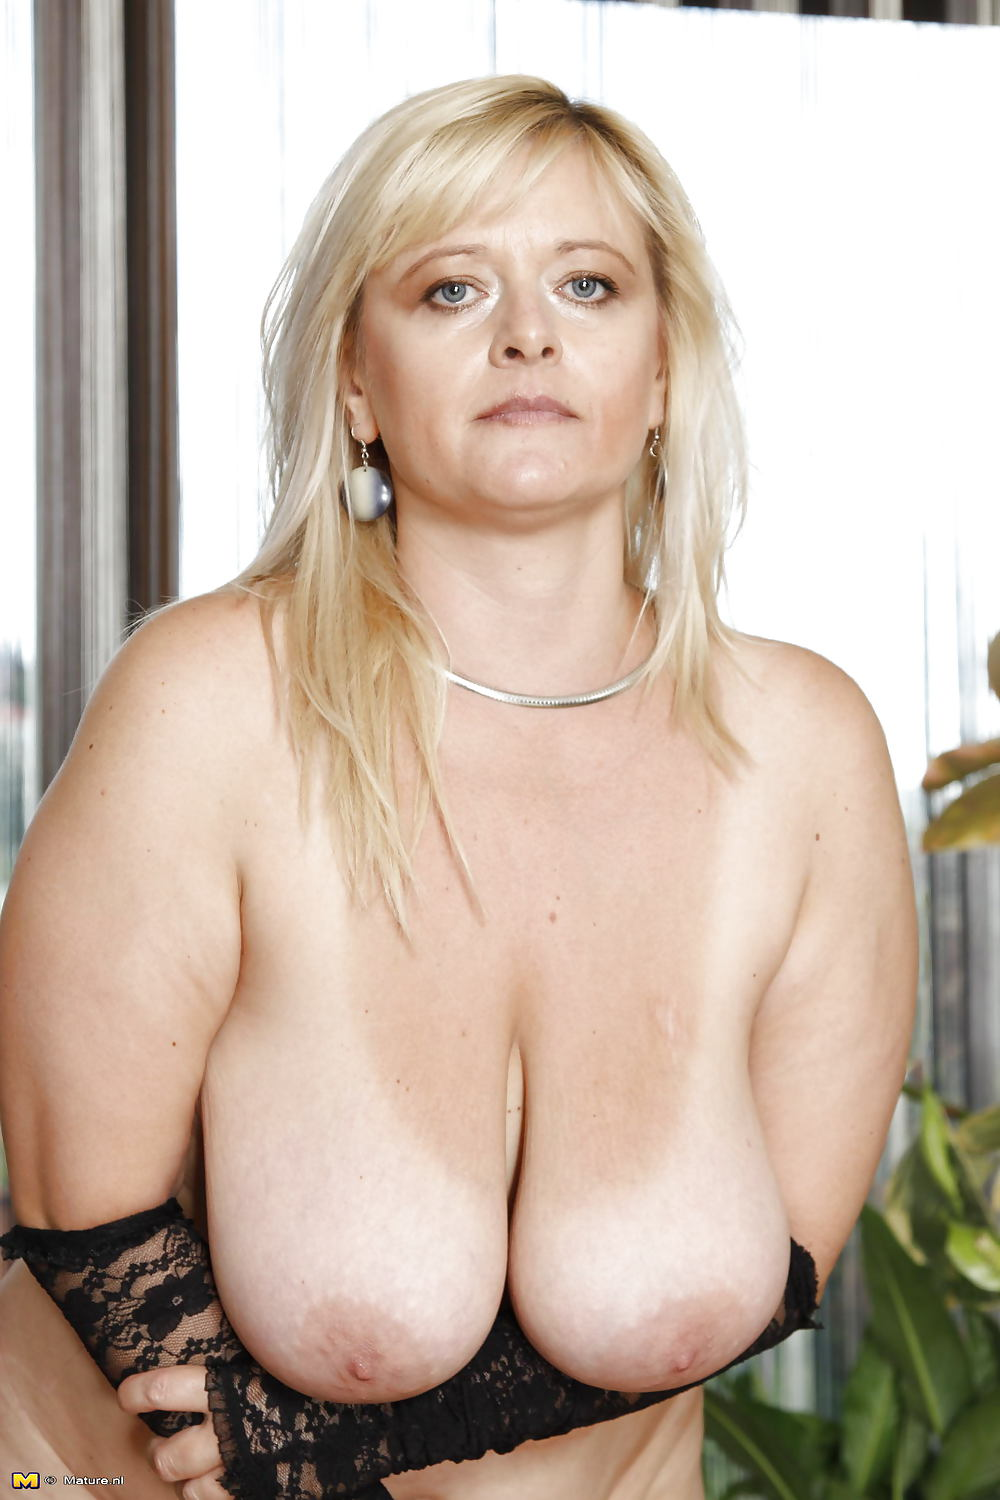 Huge Tits Mature Galleries With Naked Big Boobs